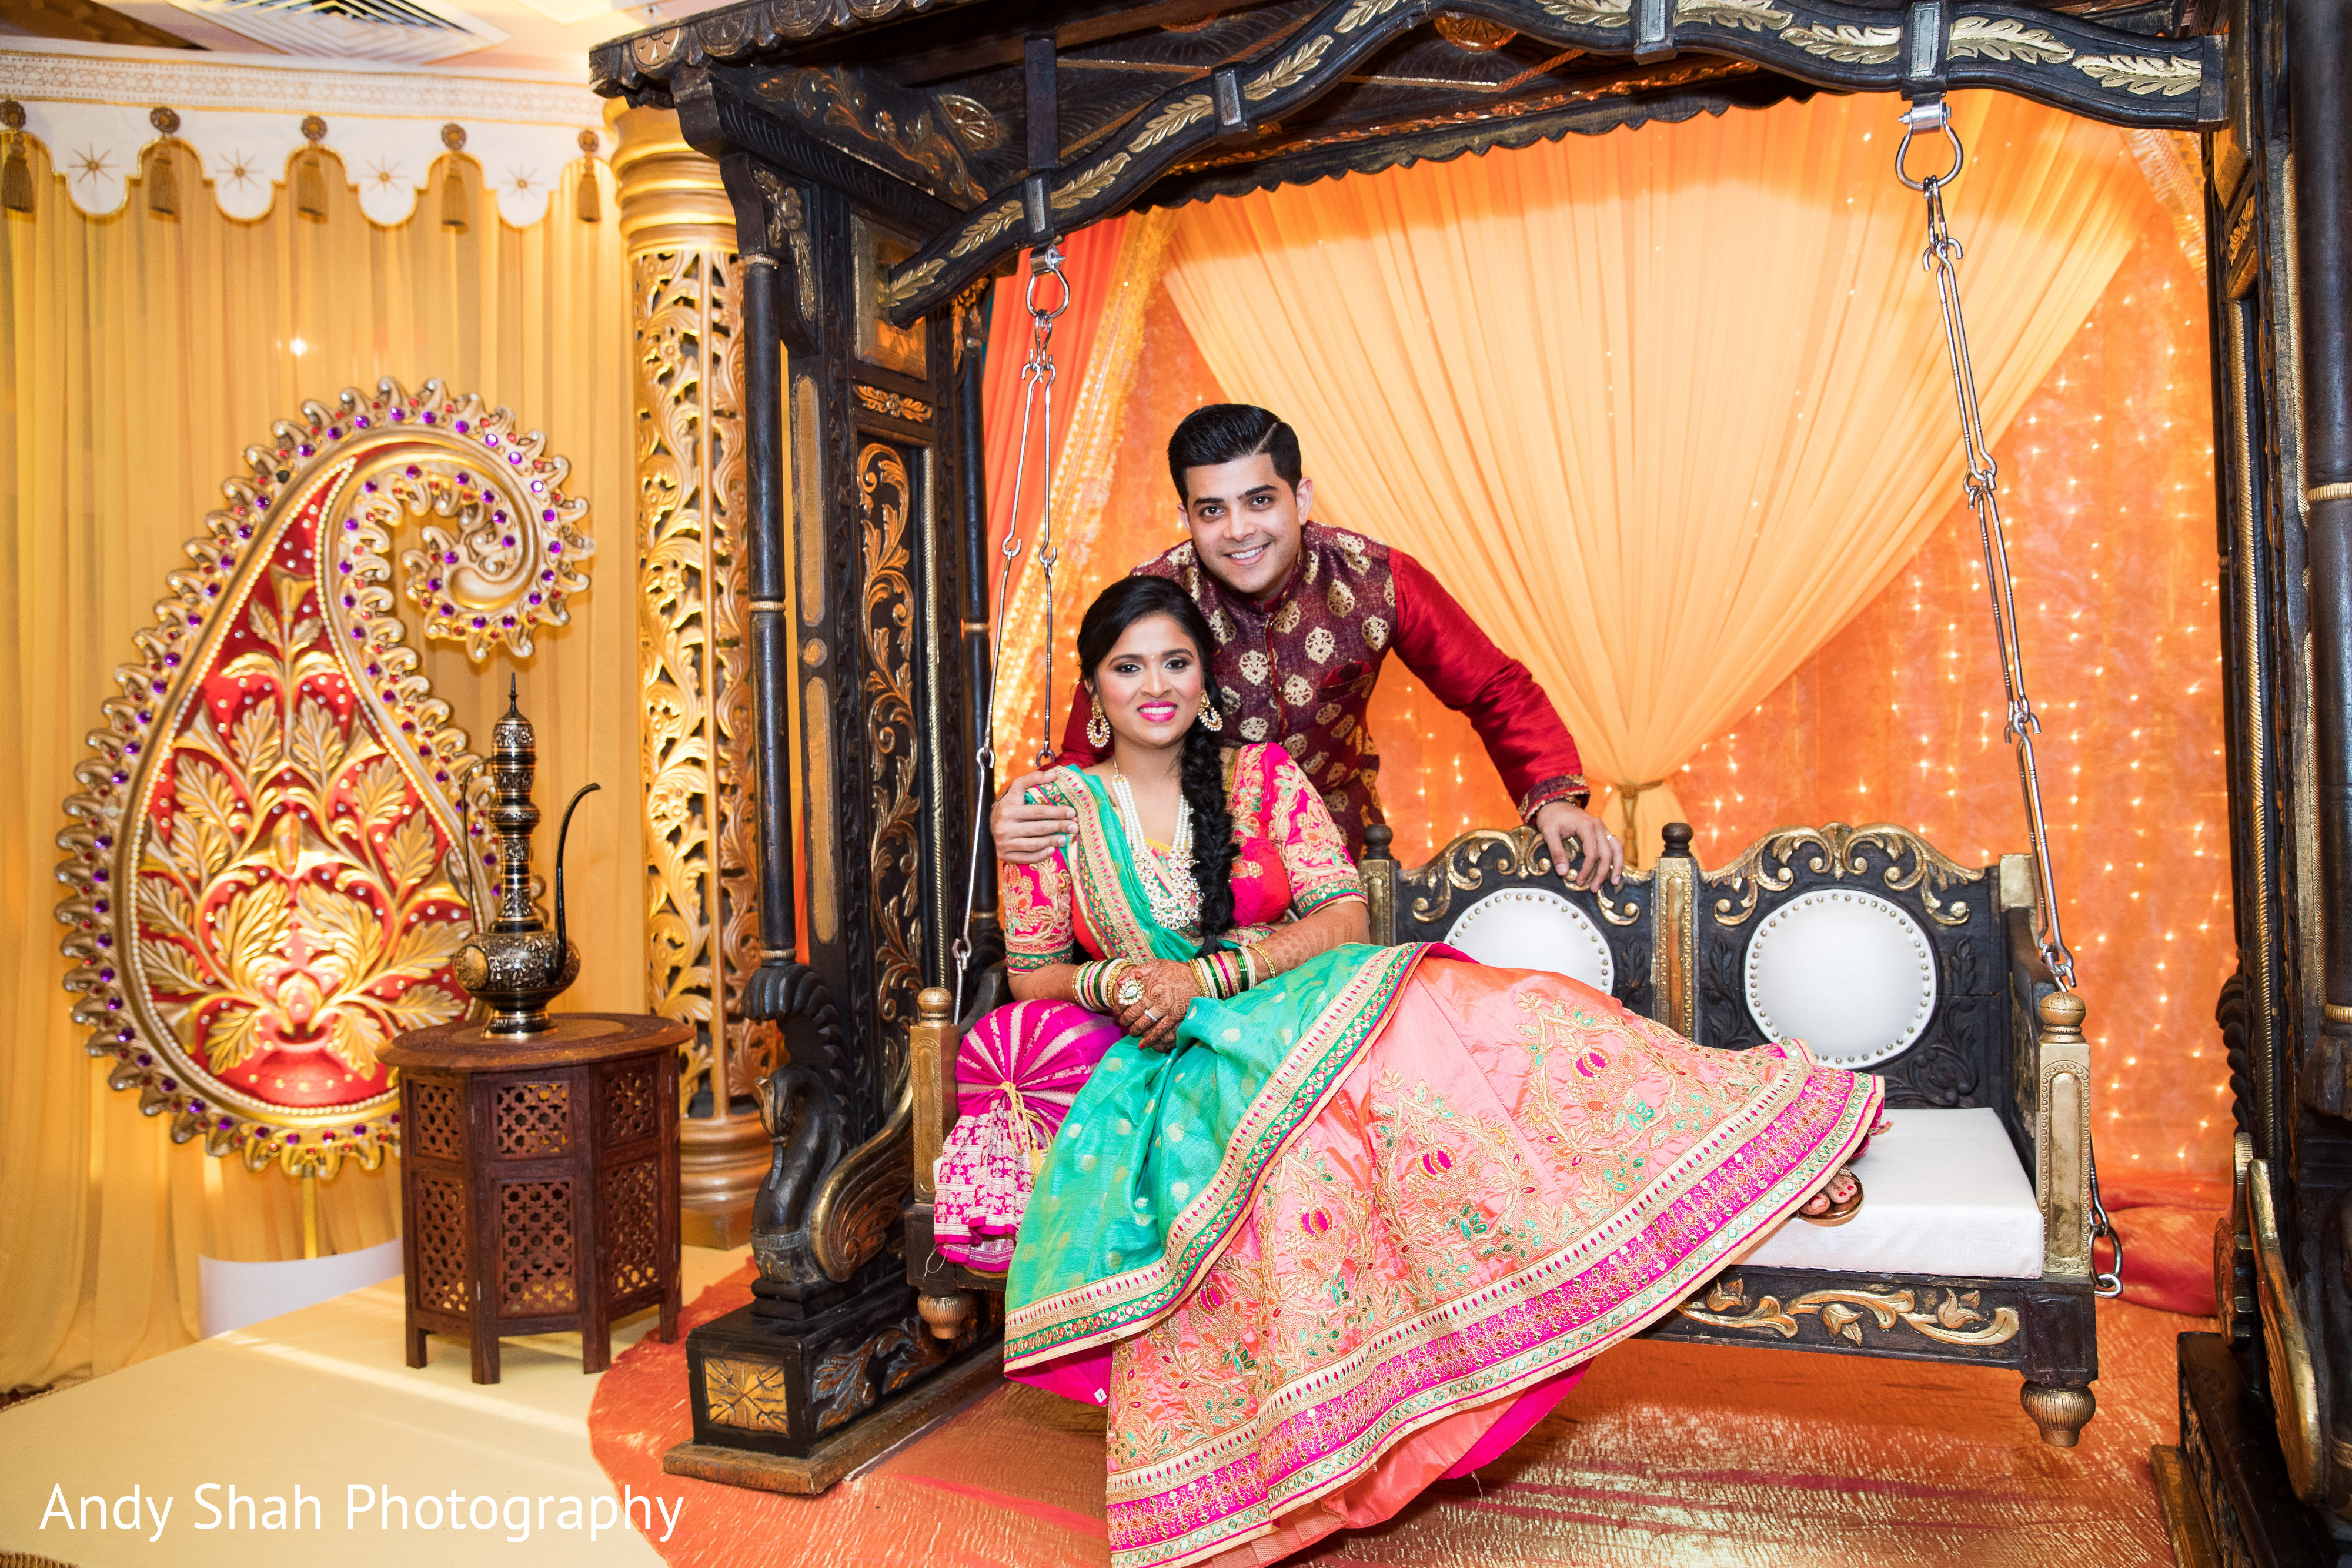 costa mesa hindu personals Search through millions of free photo personals and find the right man or woman for you free photo personal ad photos updated daily.